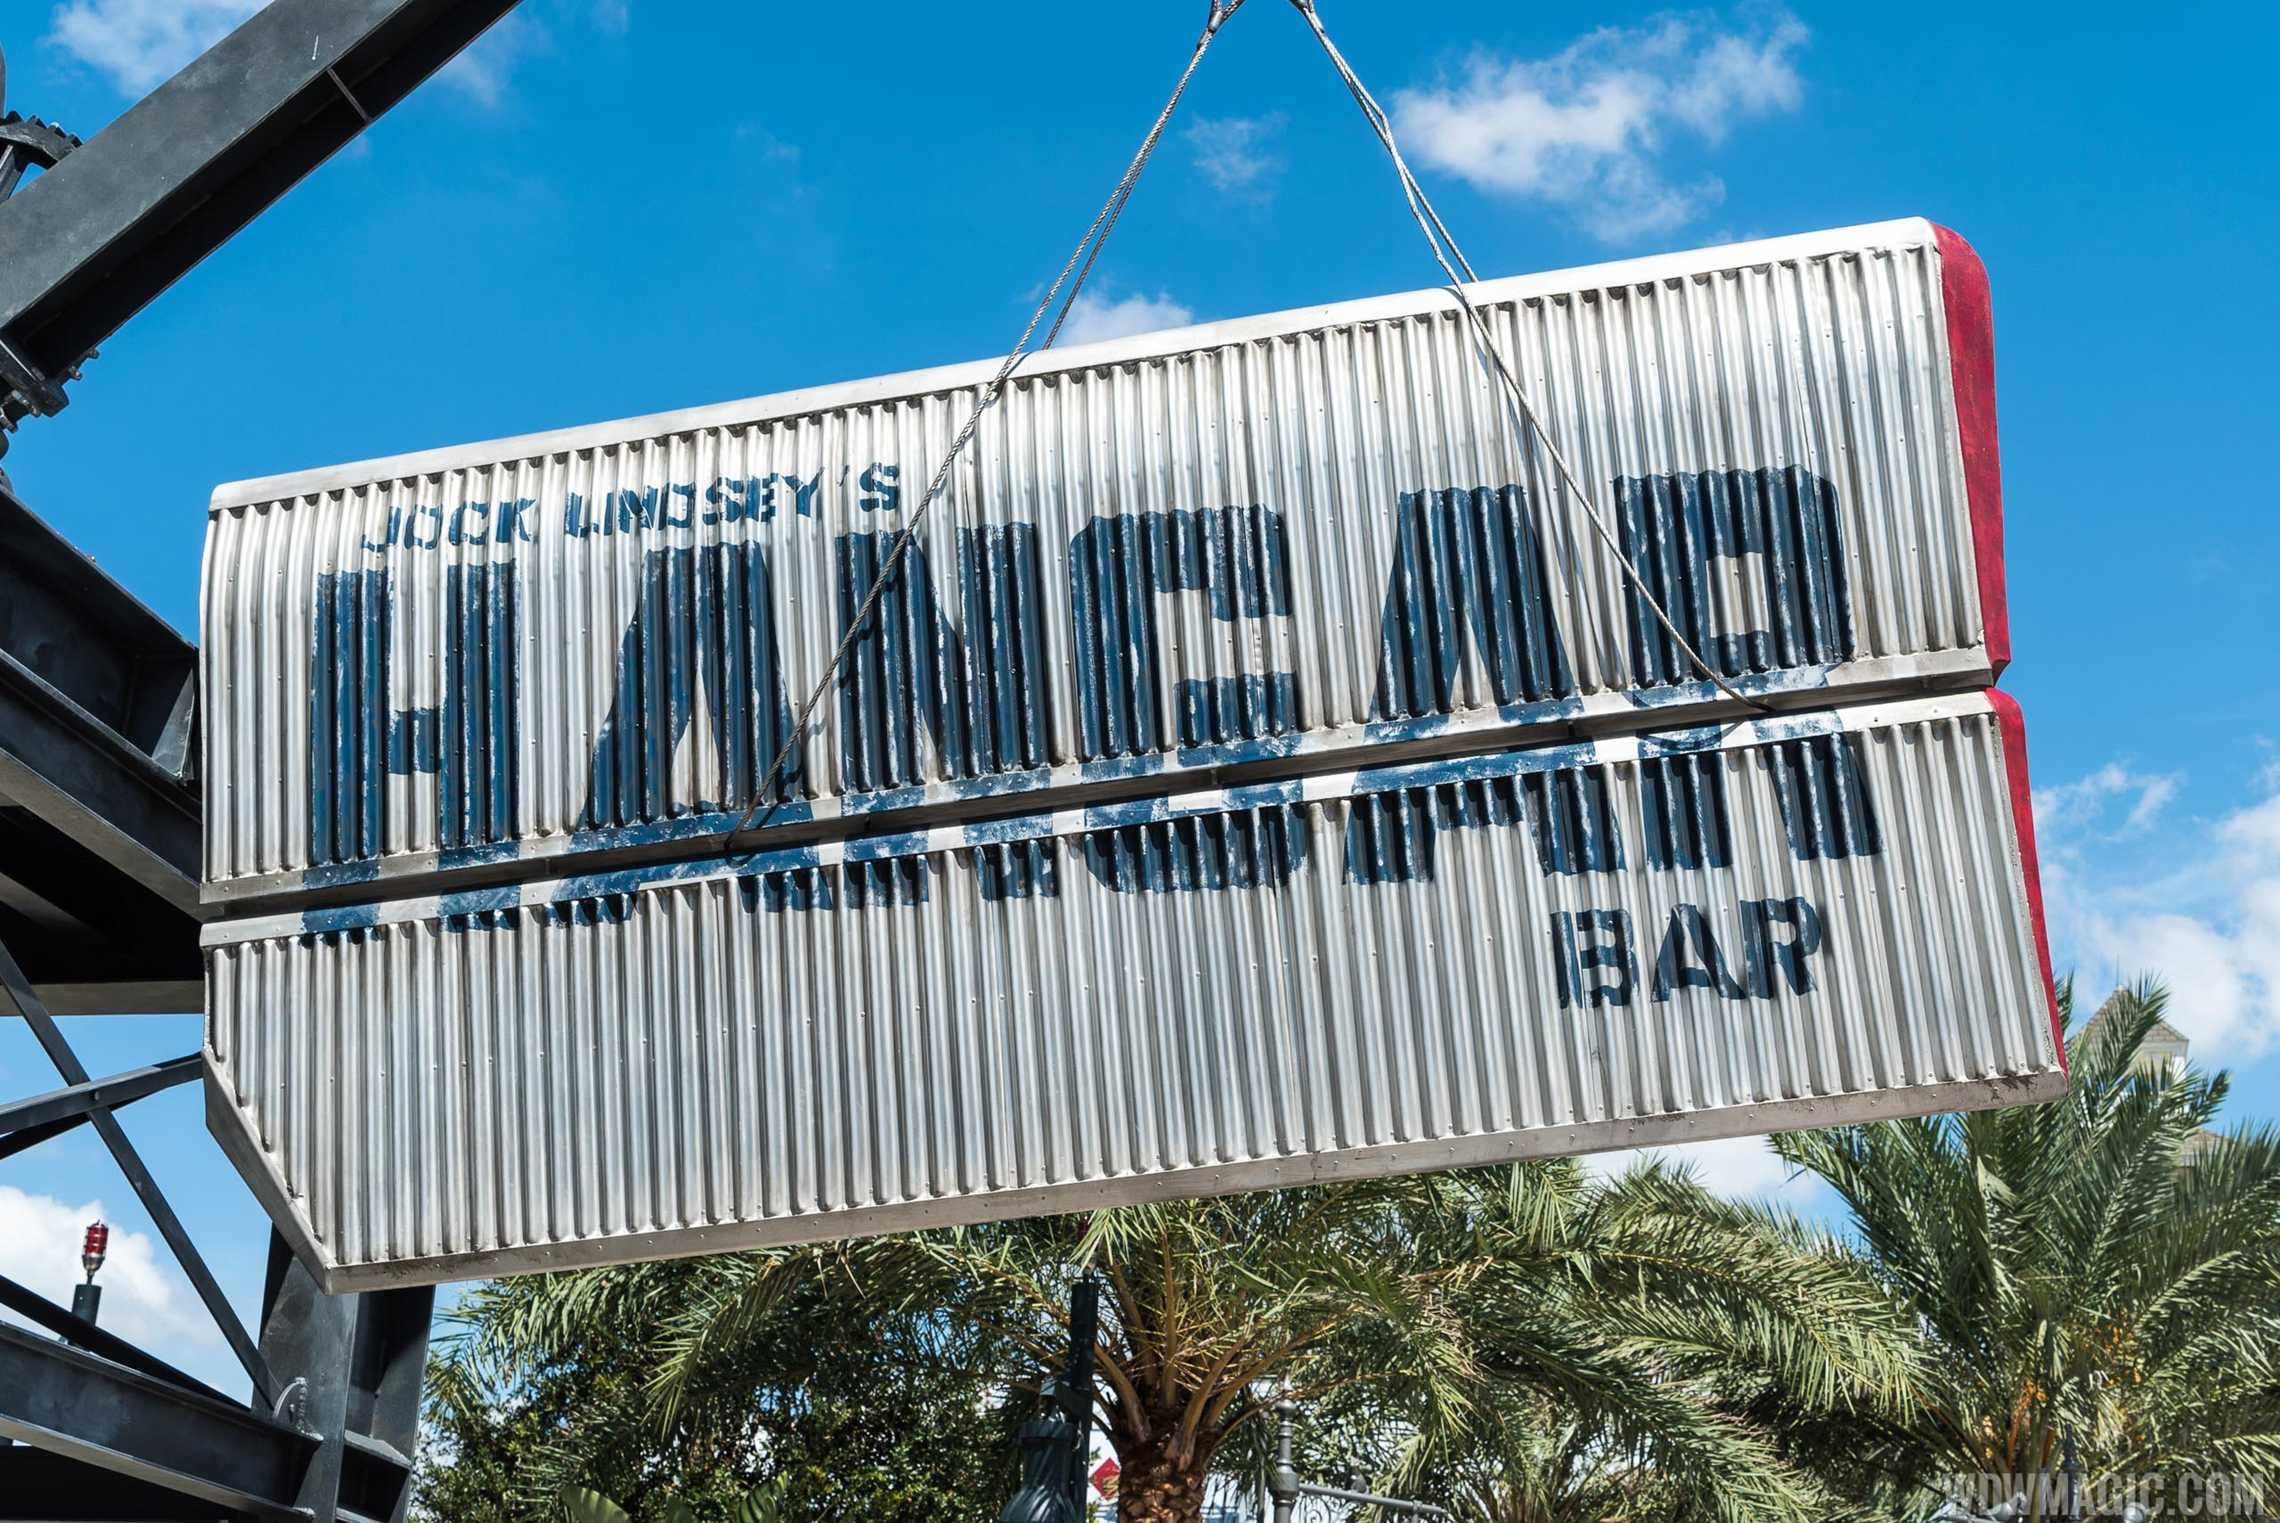 Jock Lindsey's Hangar Bar - Closeup of Signage